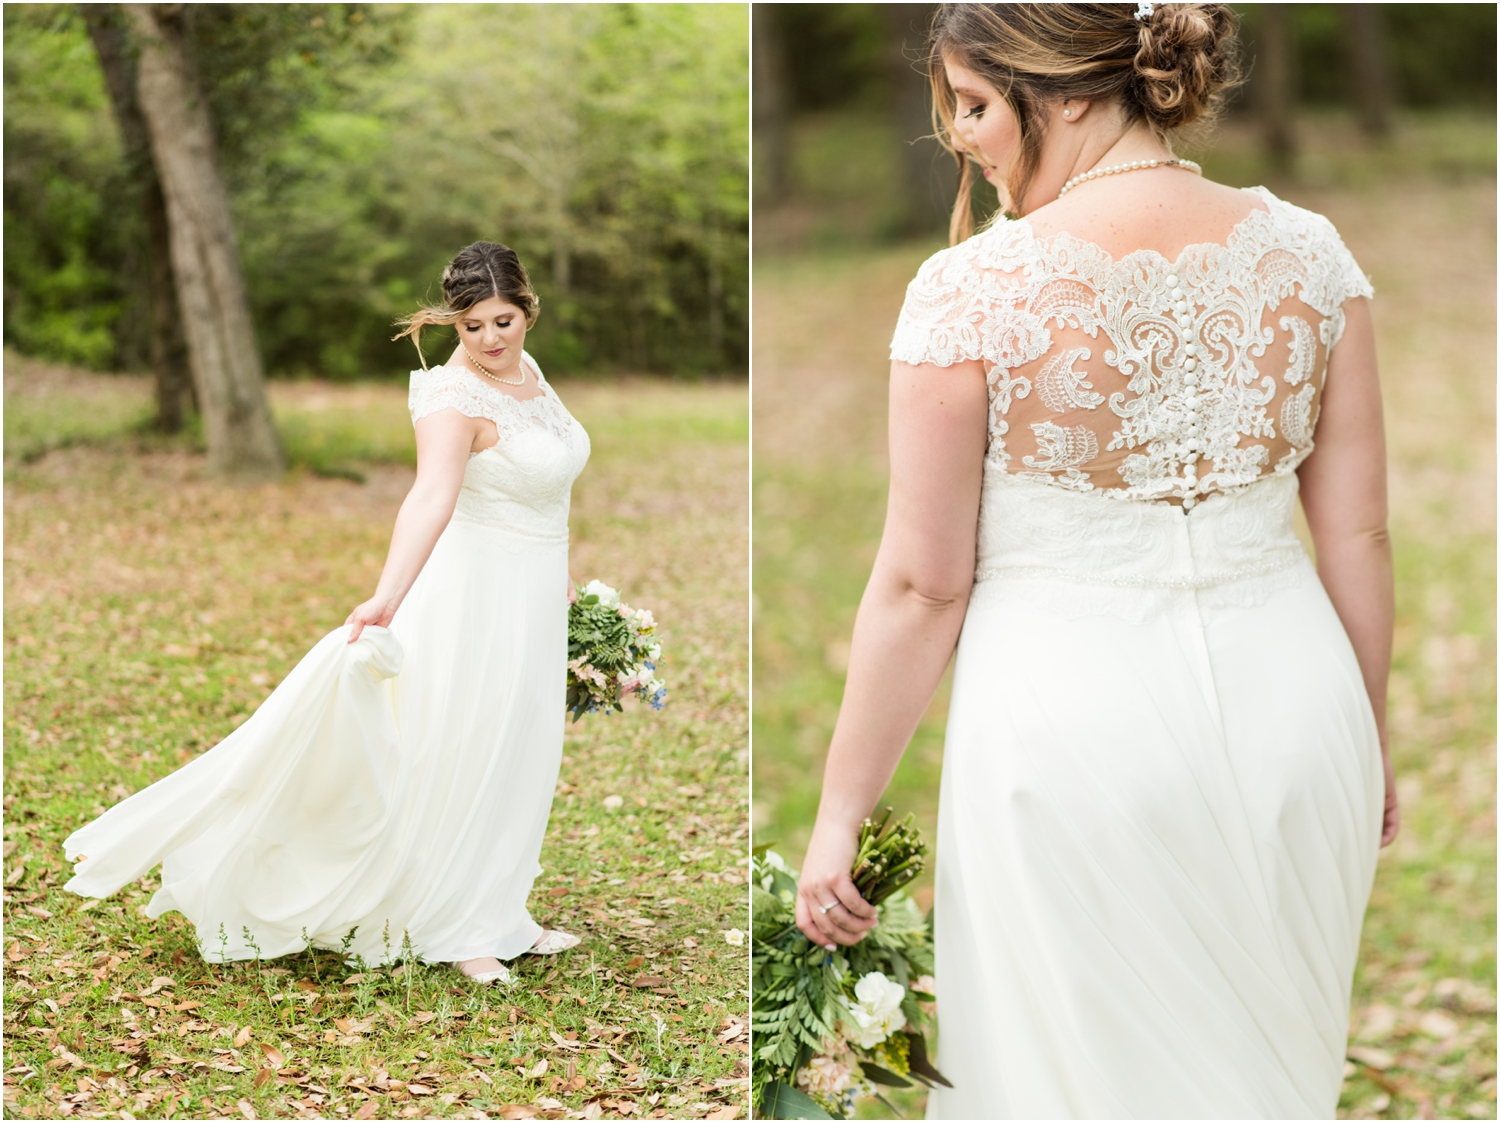 Sowell Farms Milton Florida Rustic Woodsy Barn Wedding Photographer bridal portrait